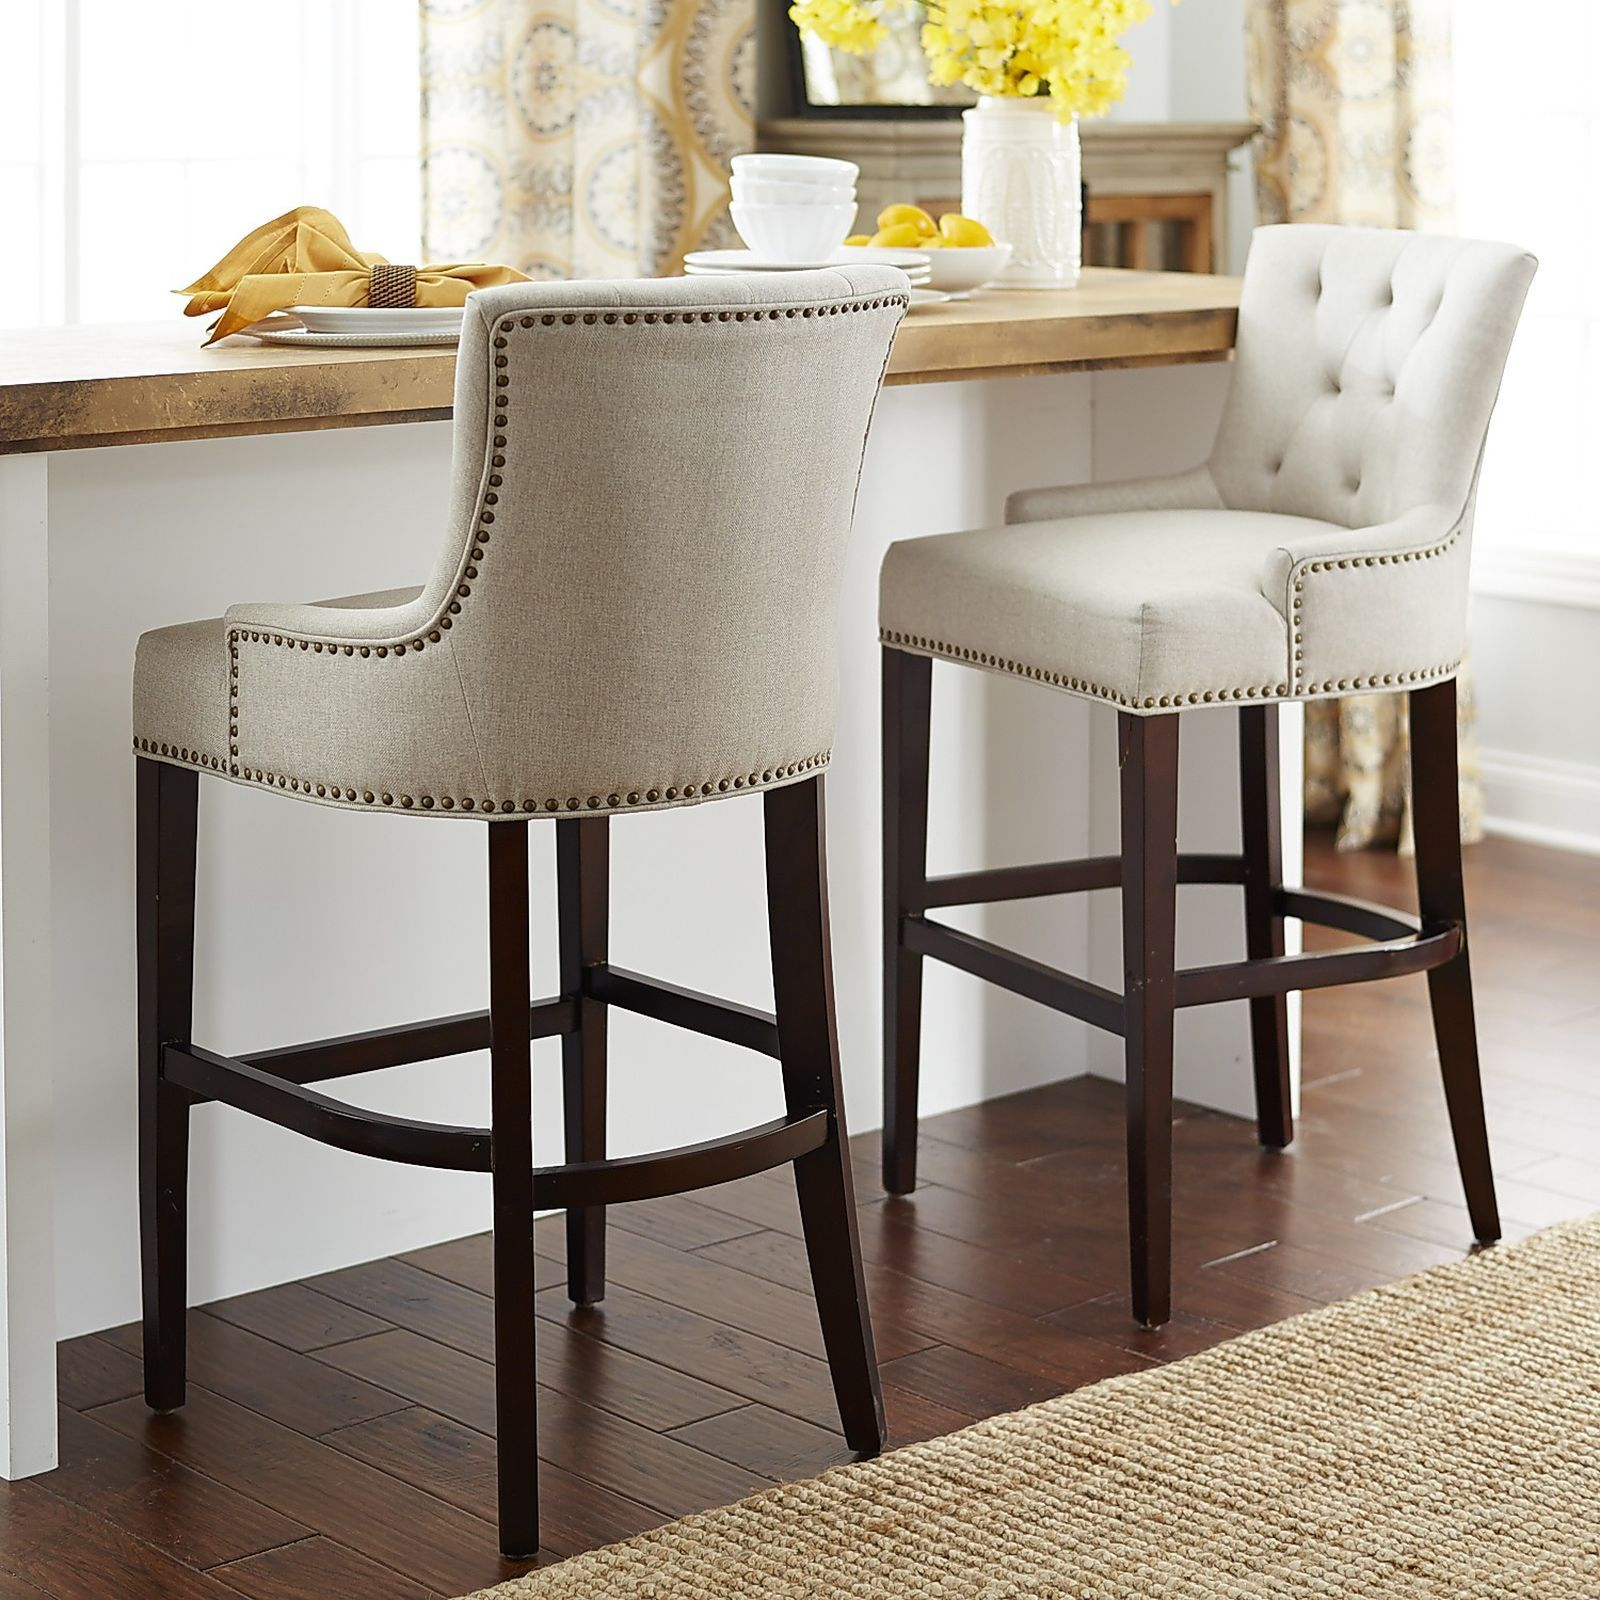 Ava flax counter bar stool ava stools and elegant for Counter stools with backs